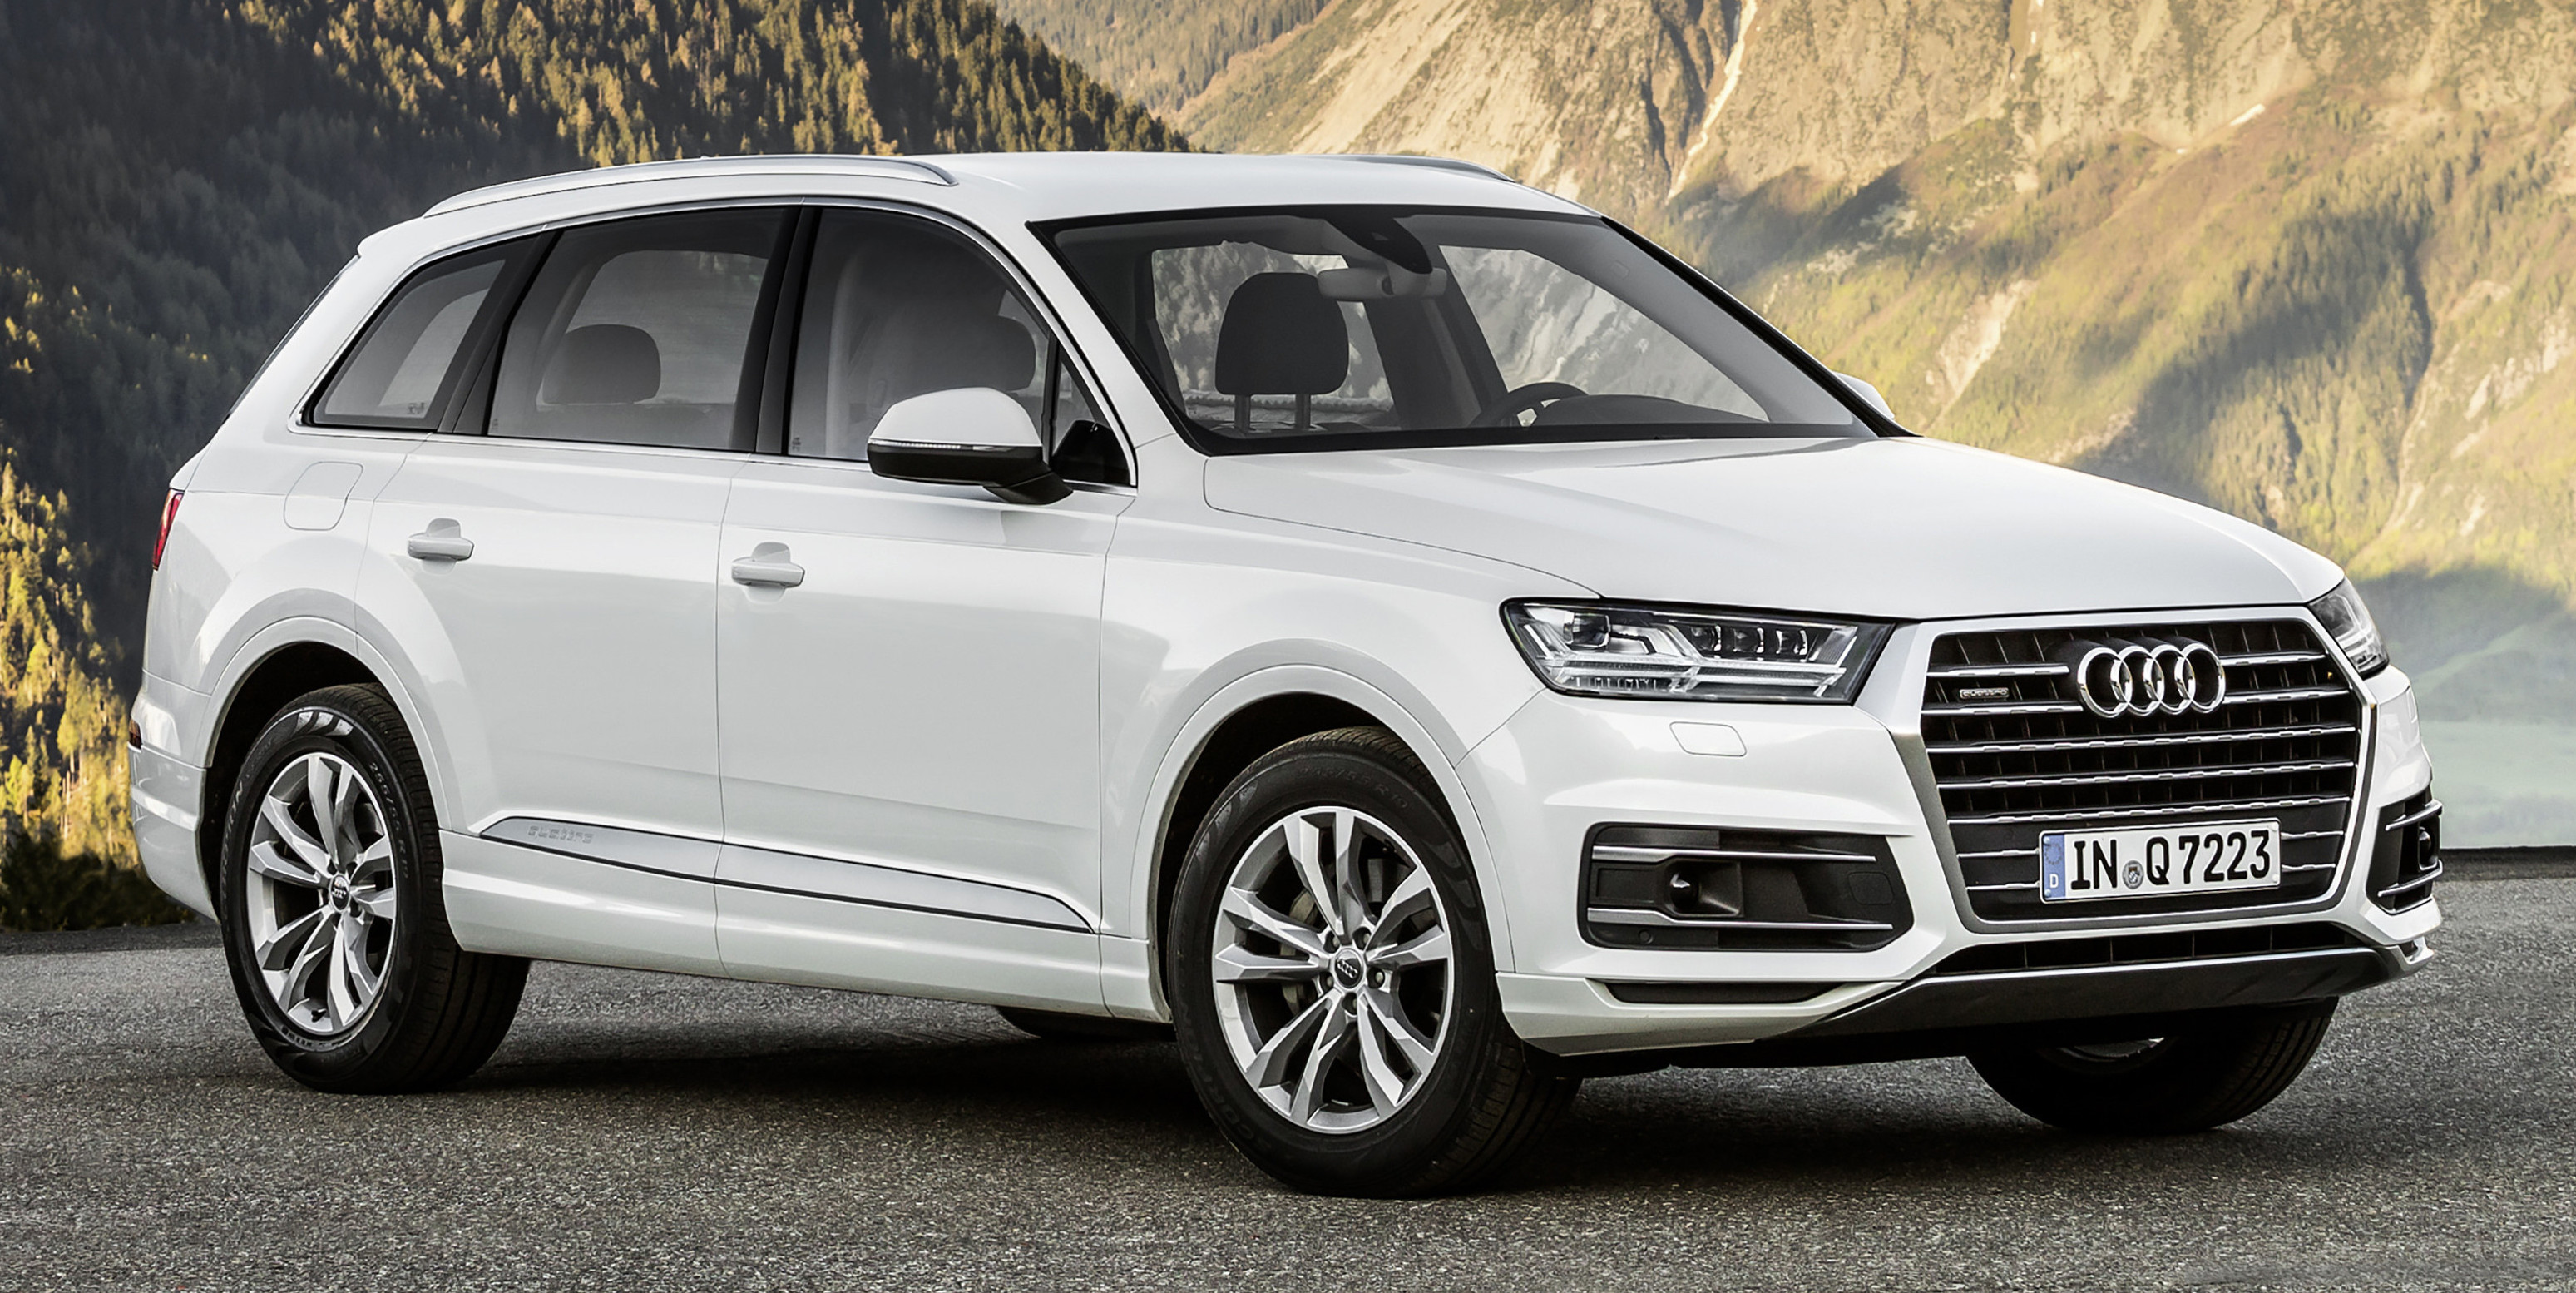 audi q7 2 0 tfsi quattro debuts in malaysia rm525k. Black Bedroom Furniture Sets. Home Design Ideas